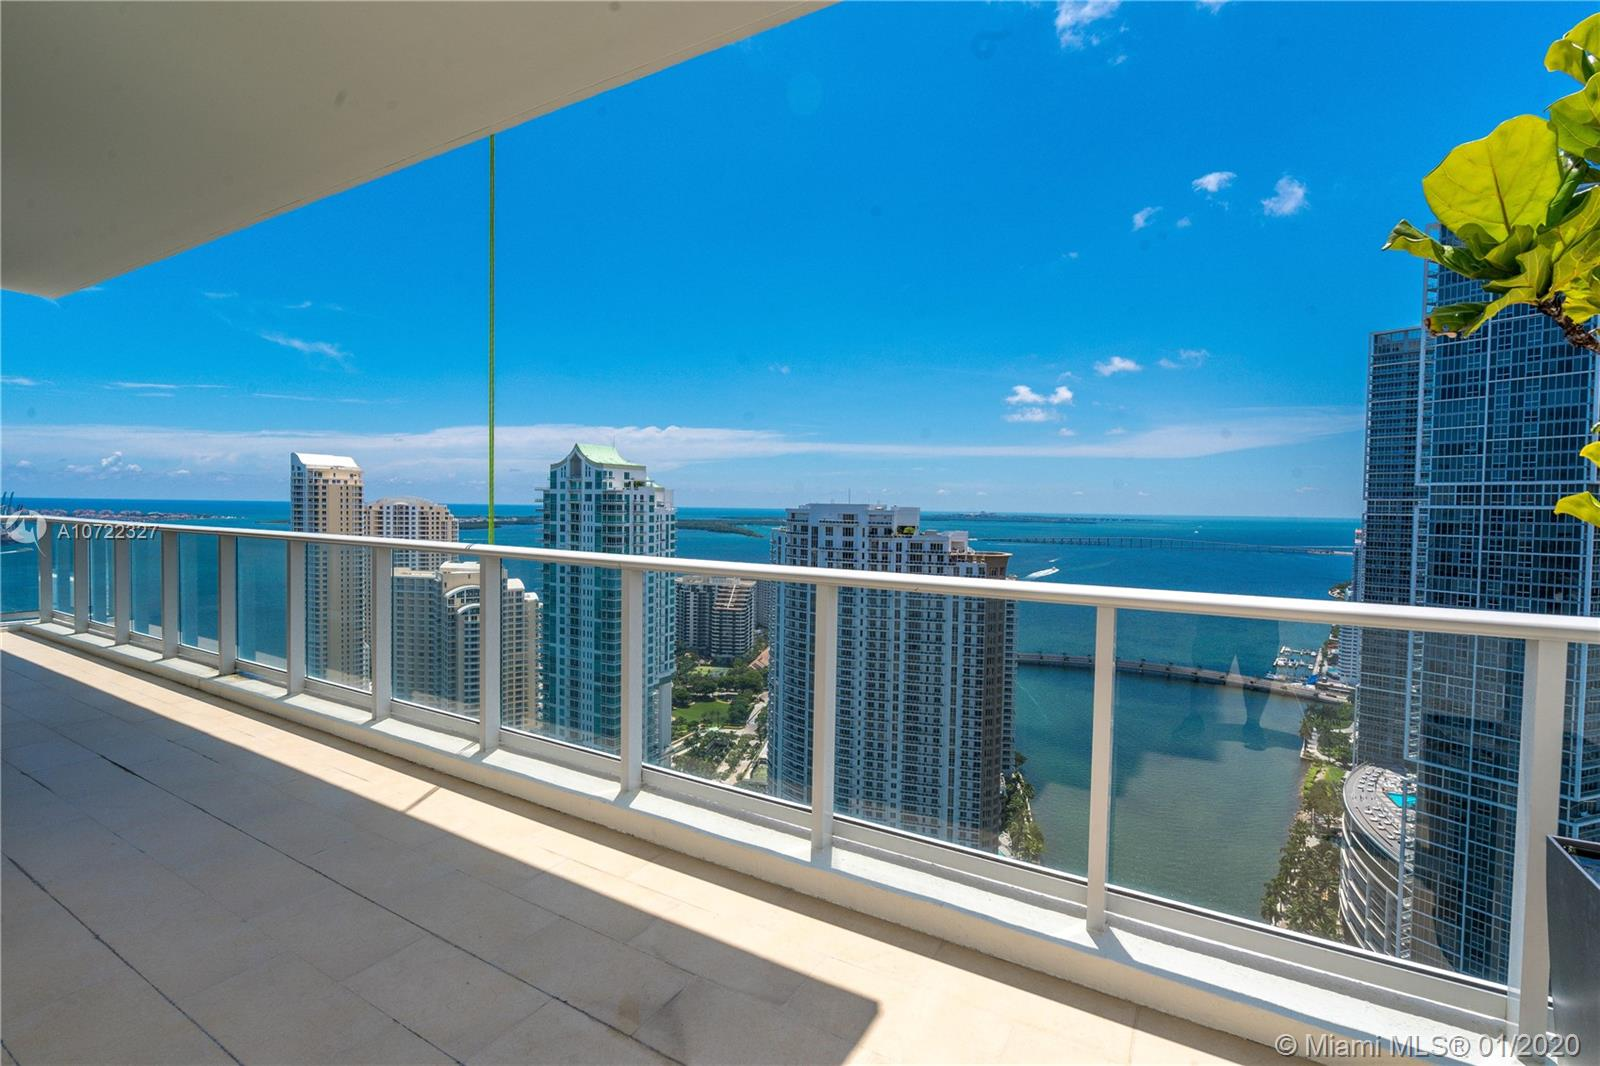 300 Biscayne blvd-PH 3802 miami-fl-33131-a10722327-Pic29